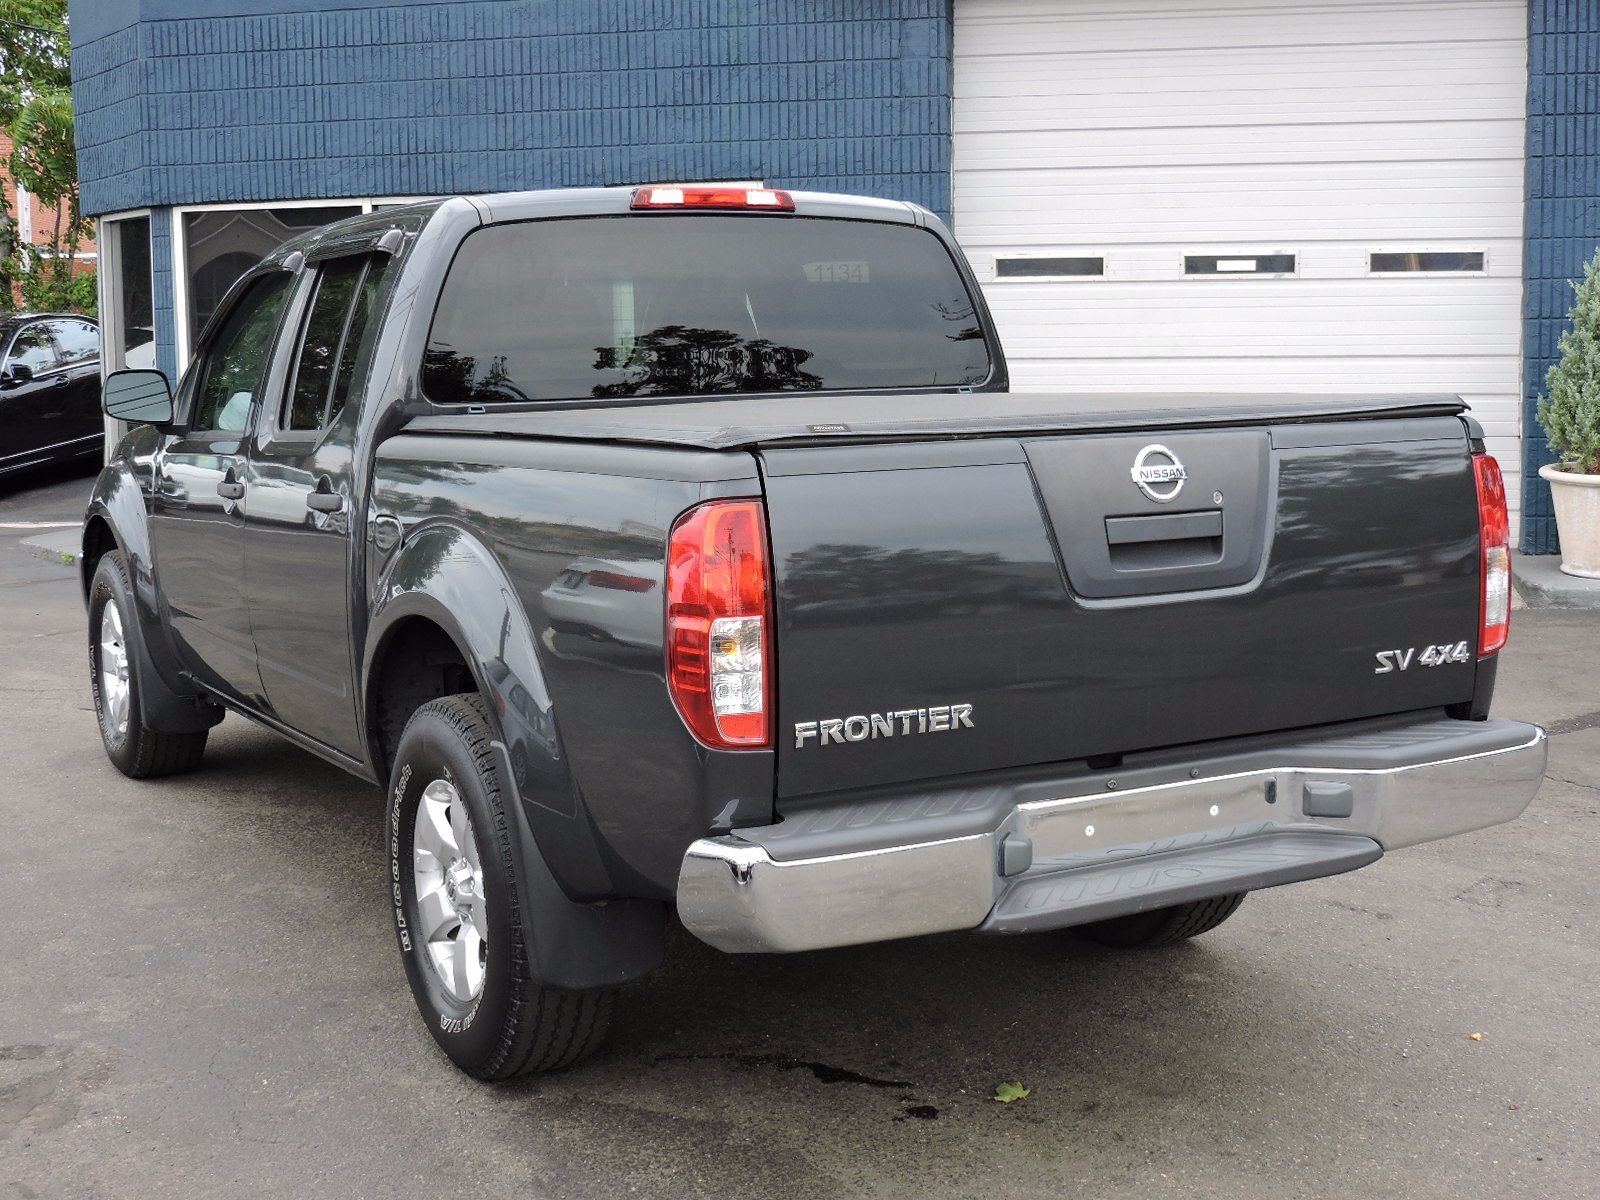 veh smith center cab ks sv sb vehicle frontier nissan crew in options ft